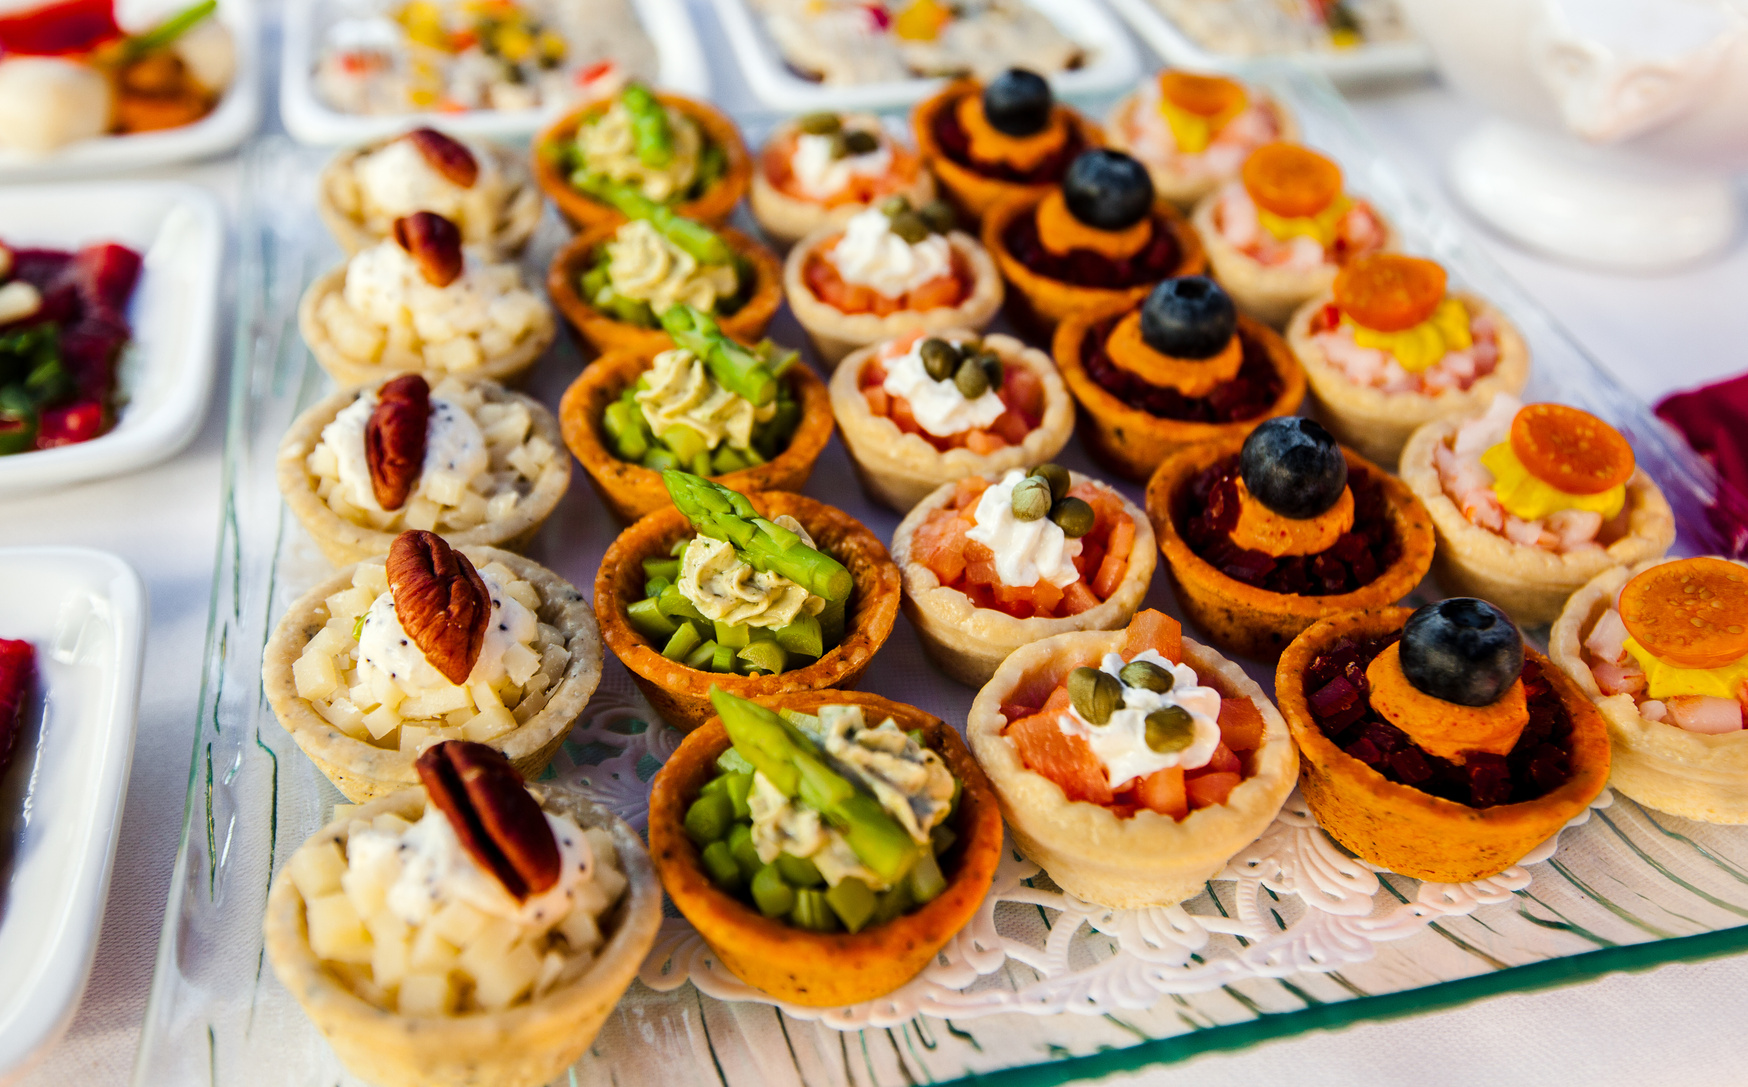 Fingerfood Geburtstag Fingerfood Essence Catering Catering Und Partyservice